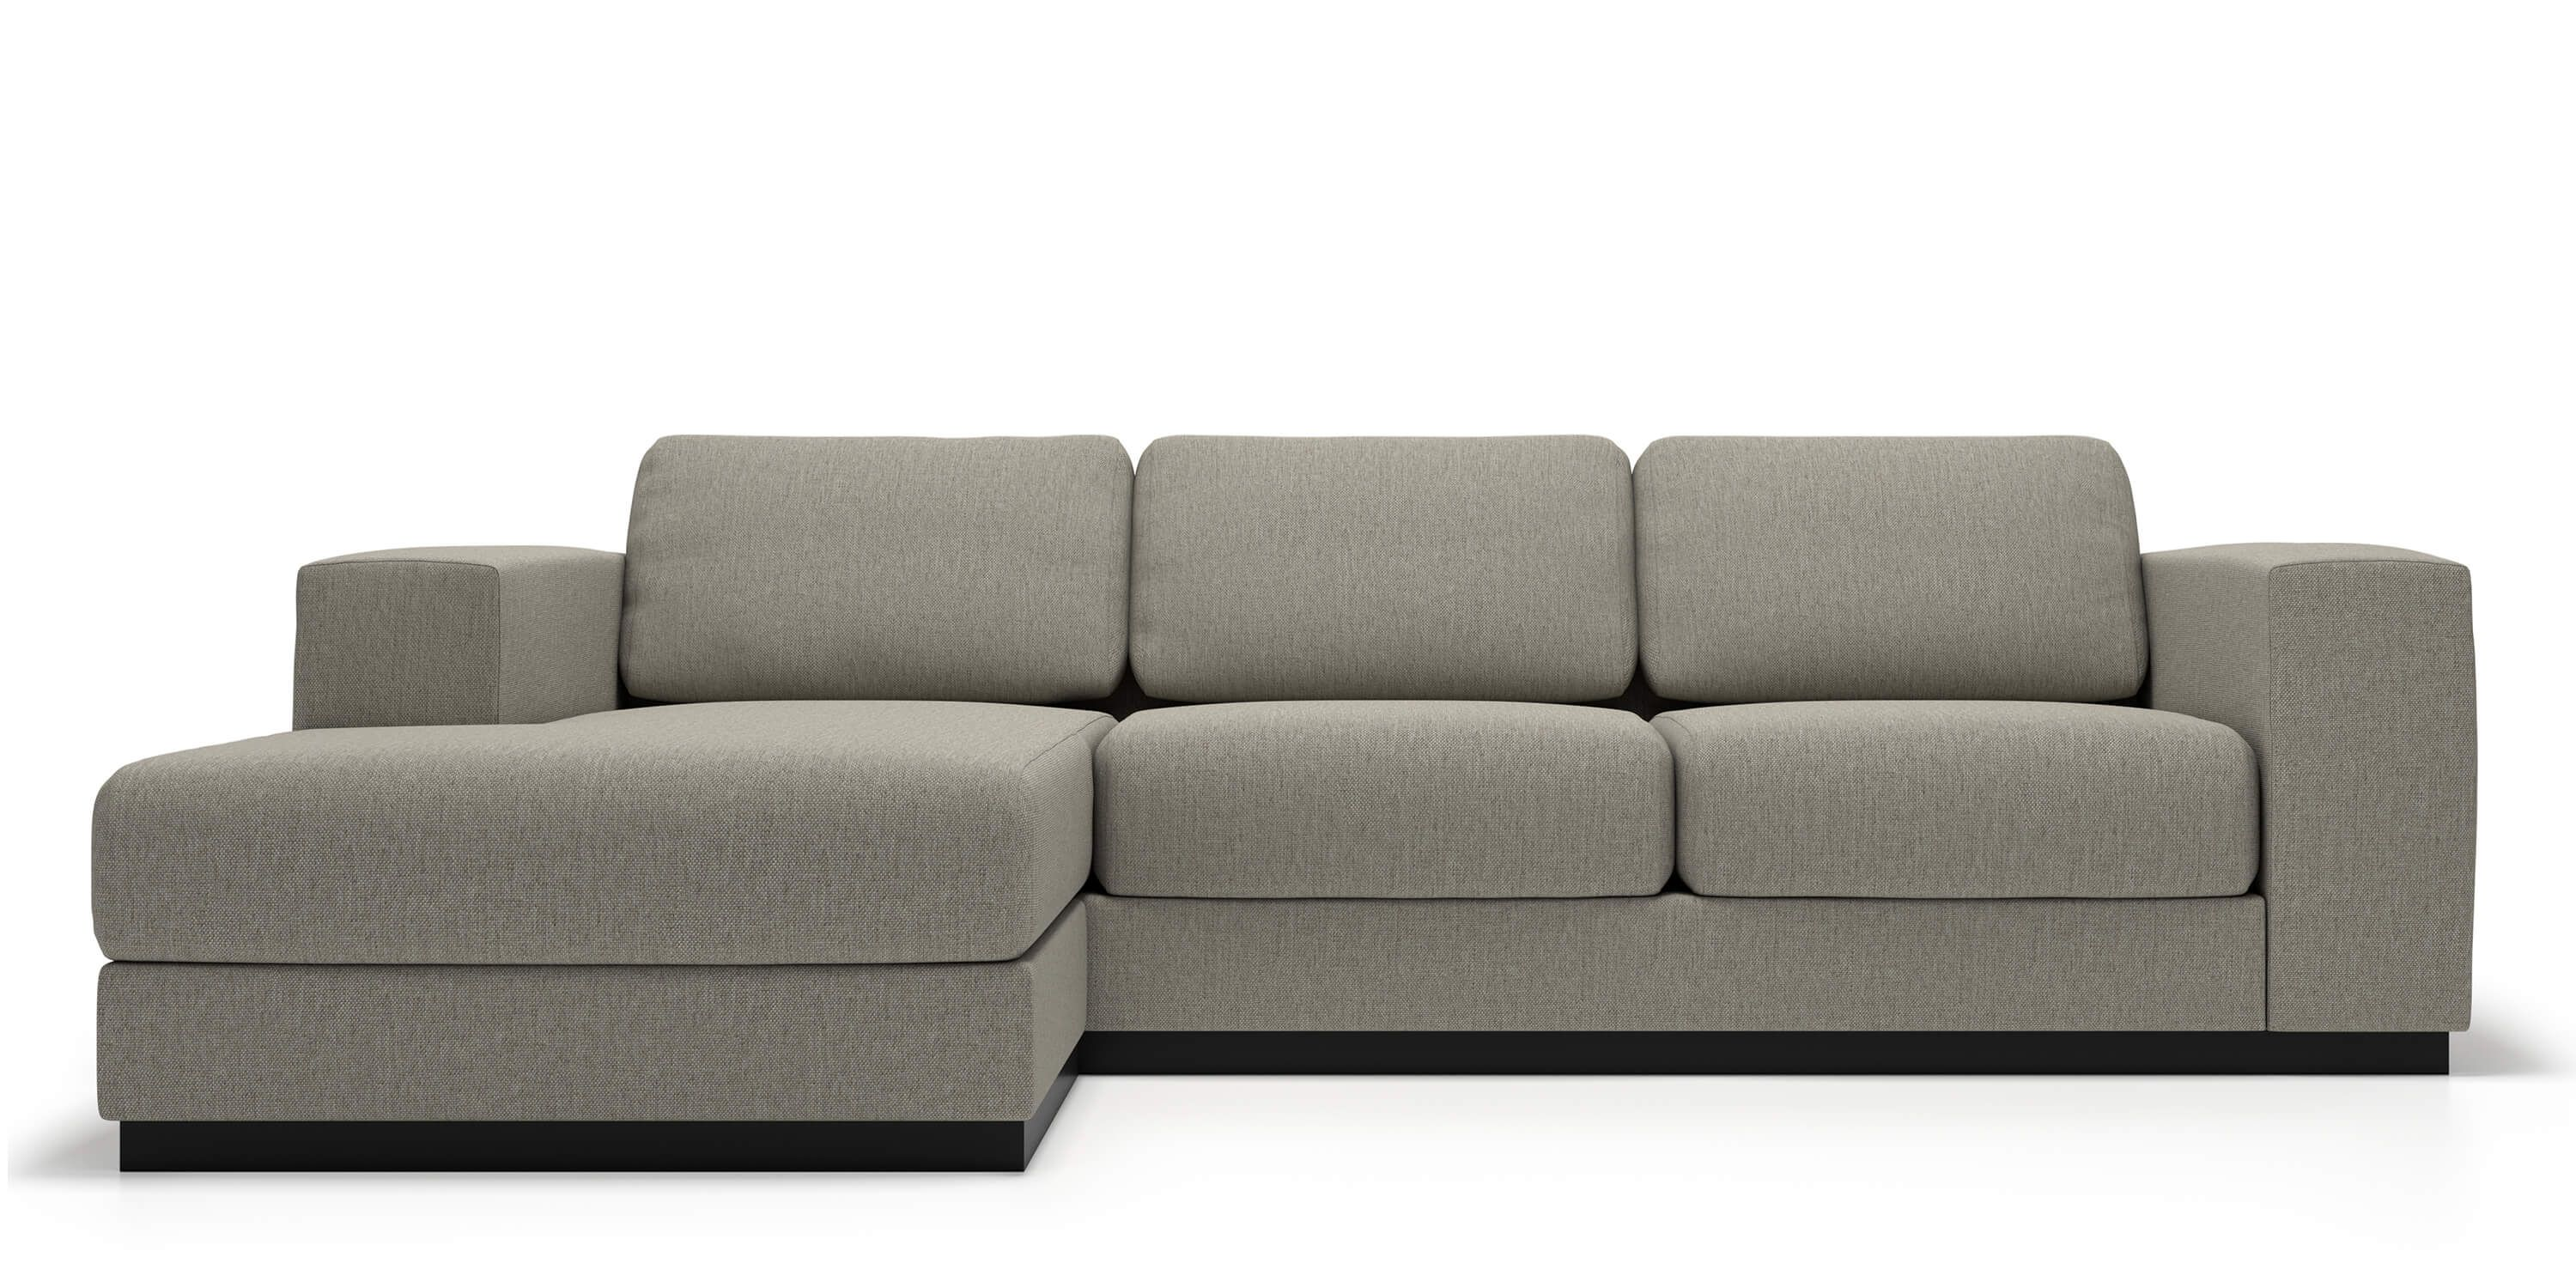 rooms gallery sofa sectional sectionals kanes reclining go set to power and couch leather lemans piece furniture